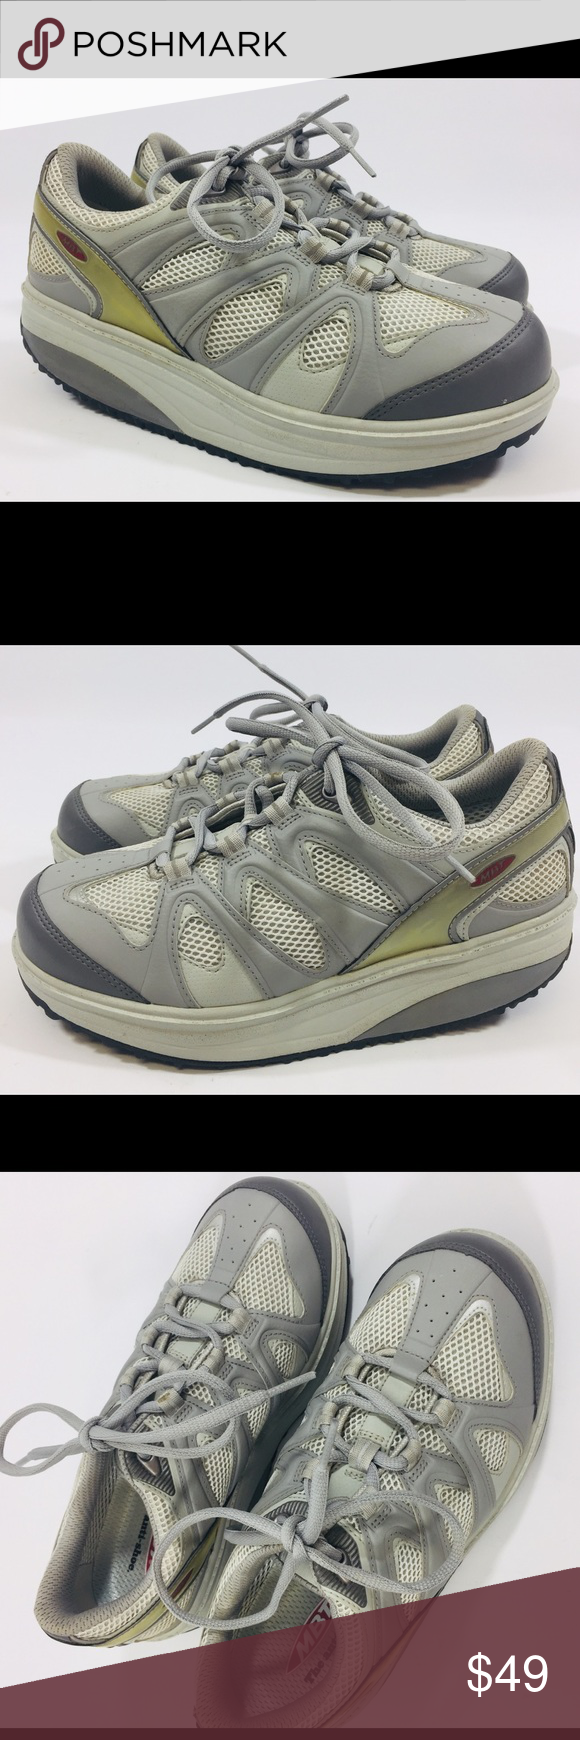 MBT Anti shoe Rocket Bottom Walking Shoes Sz 8 MBT The Anti Shoe Women s  size 8 Rocker Bottom Walking Shoes Never Worn Minor crack to vinyl on one  side 42e30e513d6d